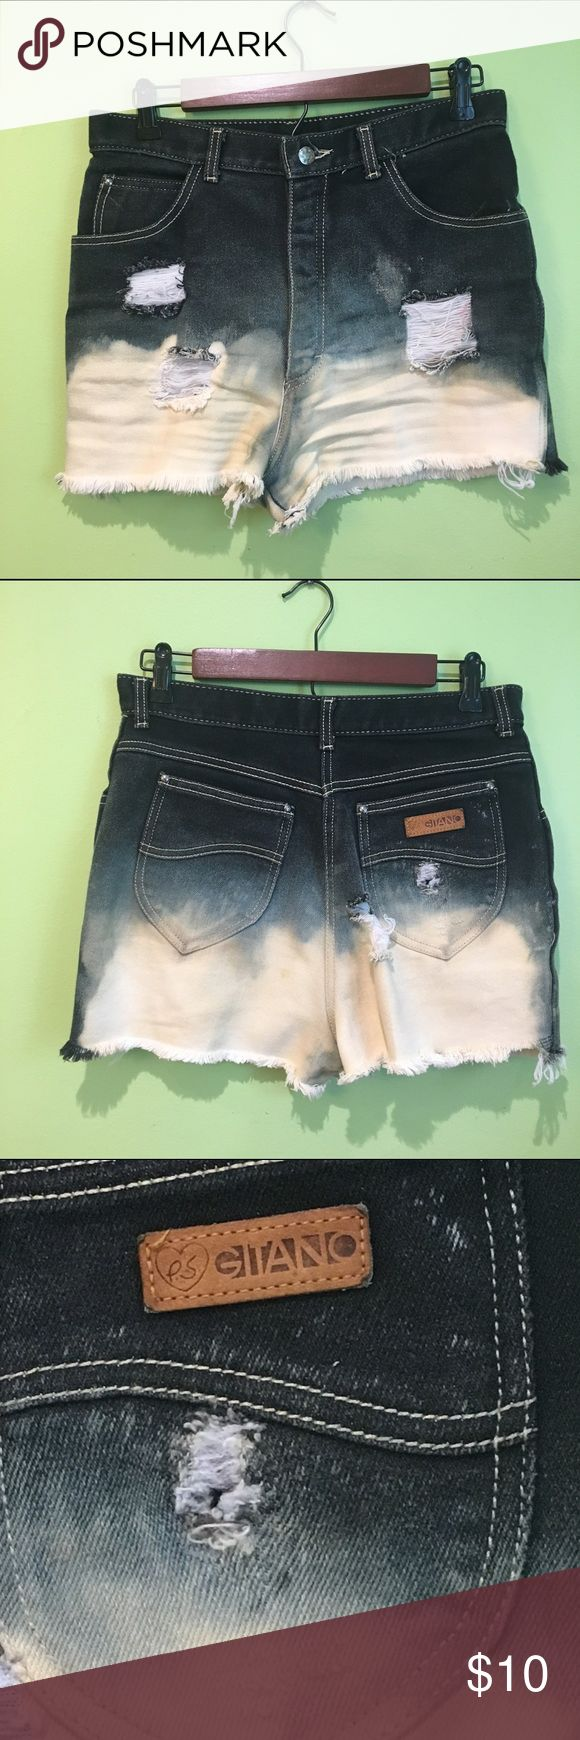 ☀️ Super Hot Homemade Highwaisted Umbre Shorts - Very cute Highwaisted homemade Jean Umbre shorts - Says it's a size 16 but fits like a size 28 - Looks very cute with a white shirt tucked in - I did accidentally make a hole on the back near the butt but it looks fine when they are put on - Very stretchy and comfortable - Never worn before - Feel free to make an offer!  Shorts Jean Shorts